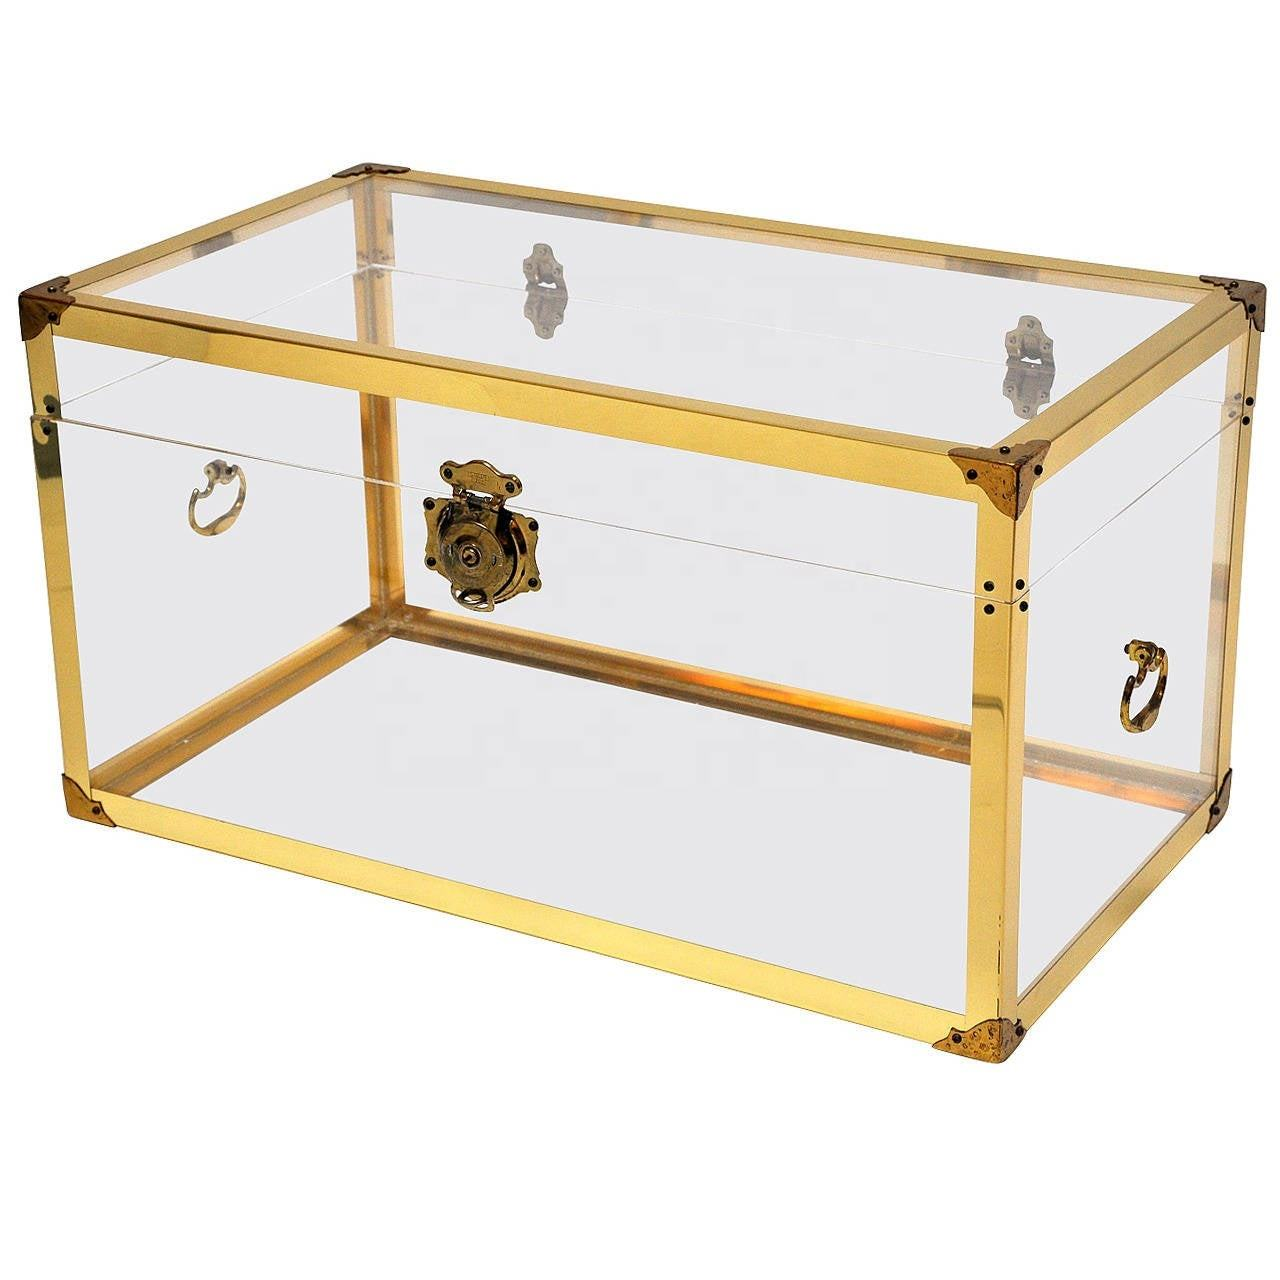 High Luxury Clear Lucite Acrylic Trunk Coffee Table With Brass Metal Corner